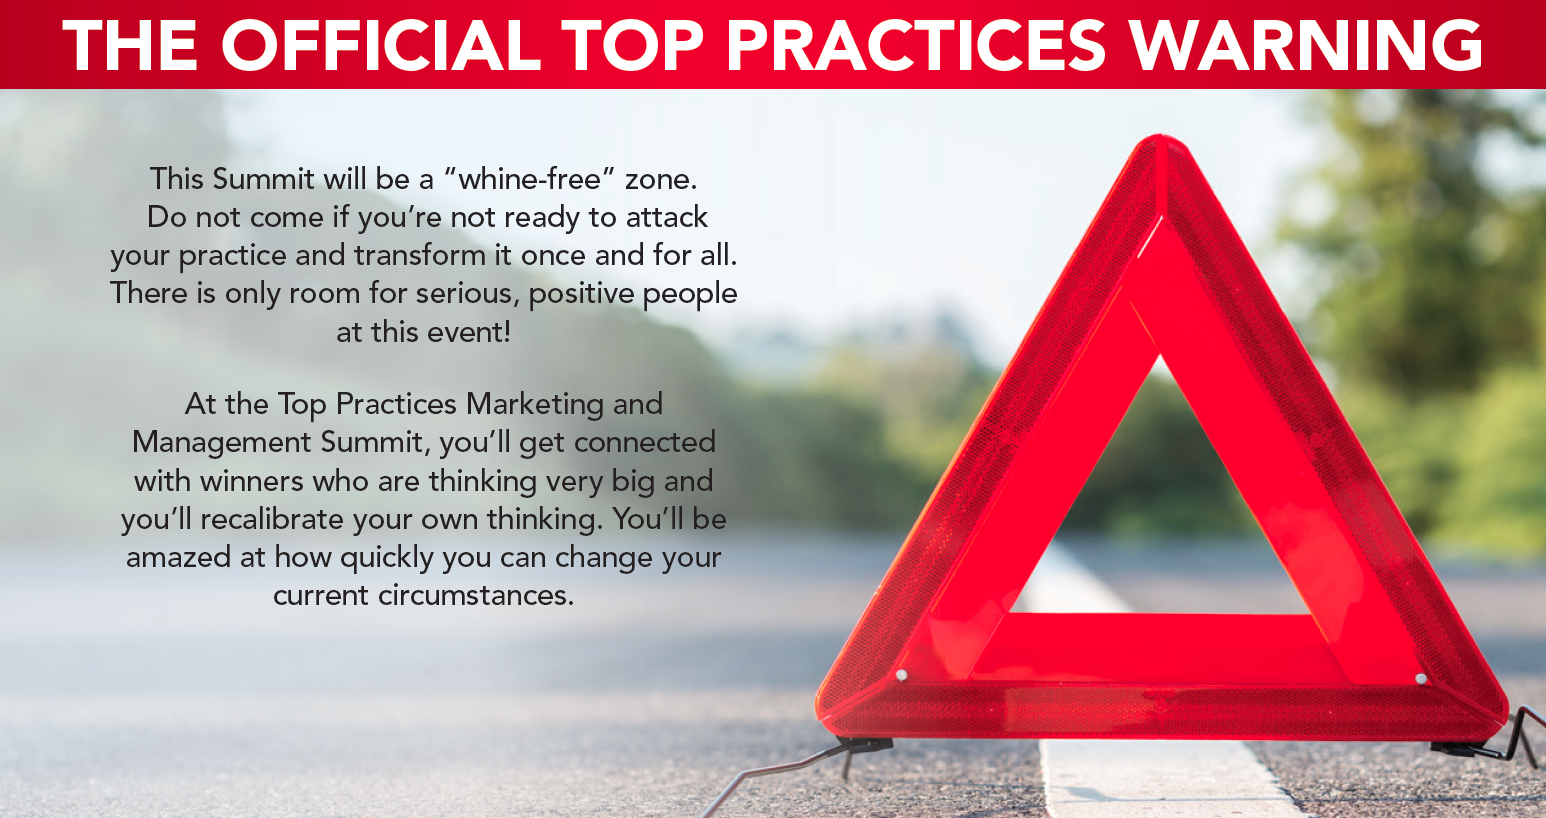 The Official Top Practices Warning